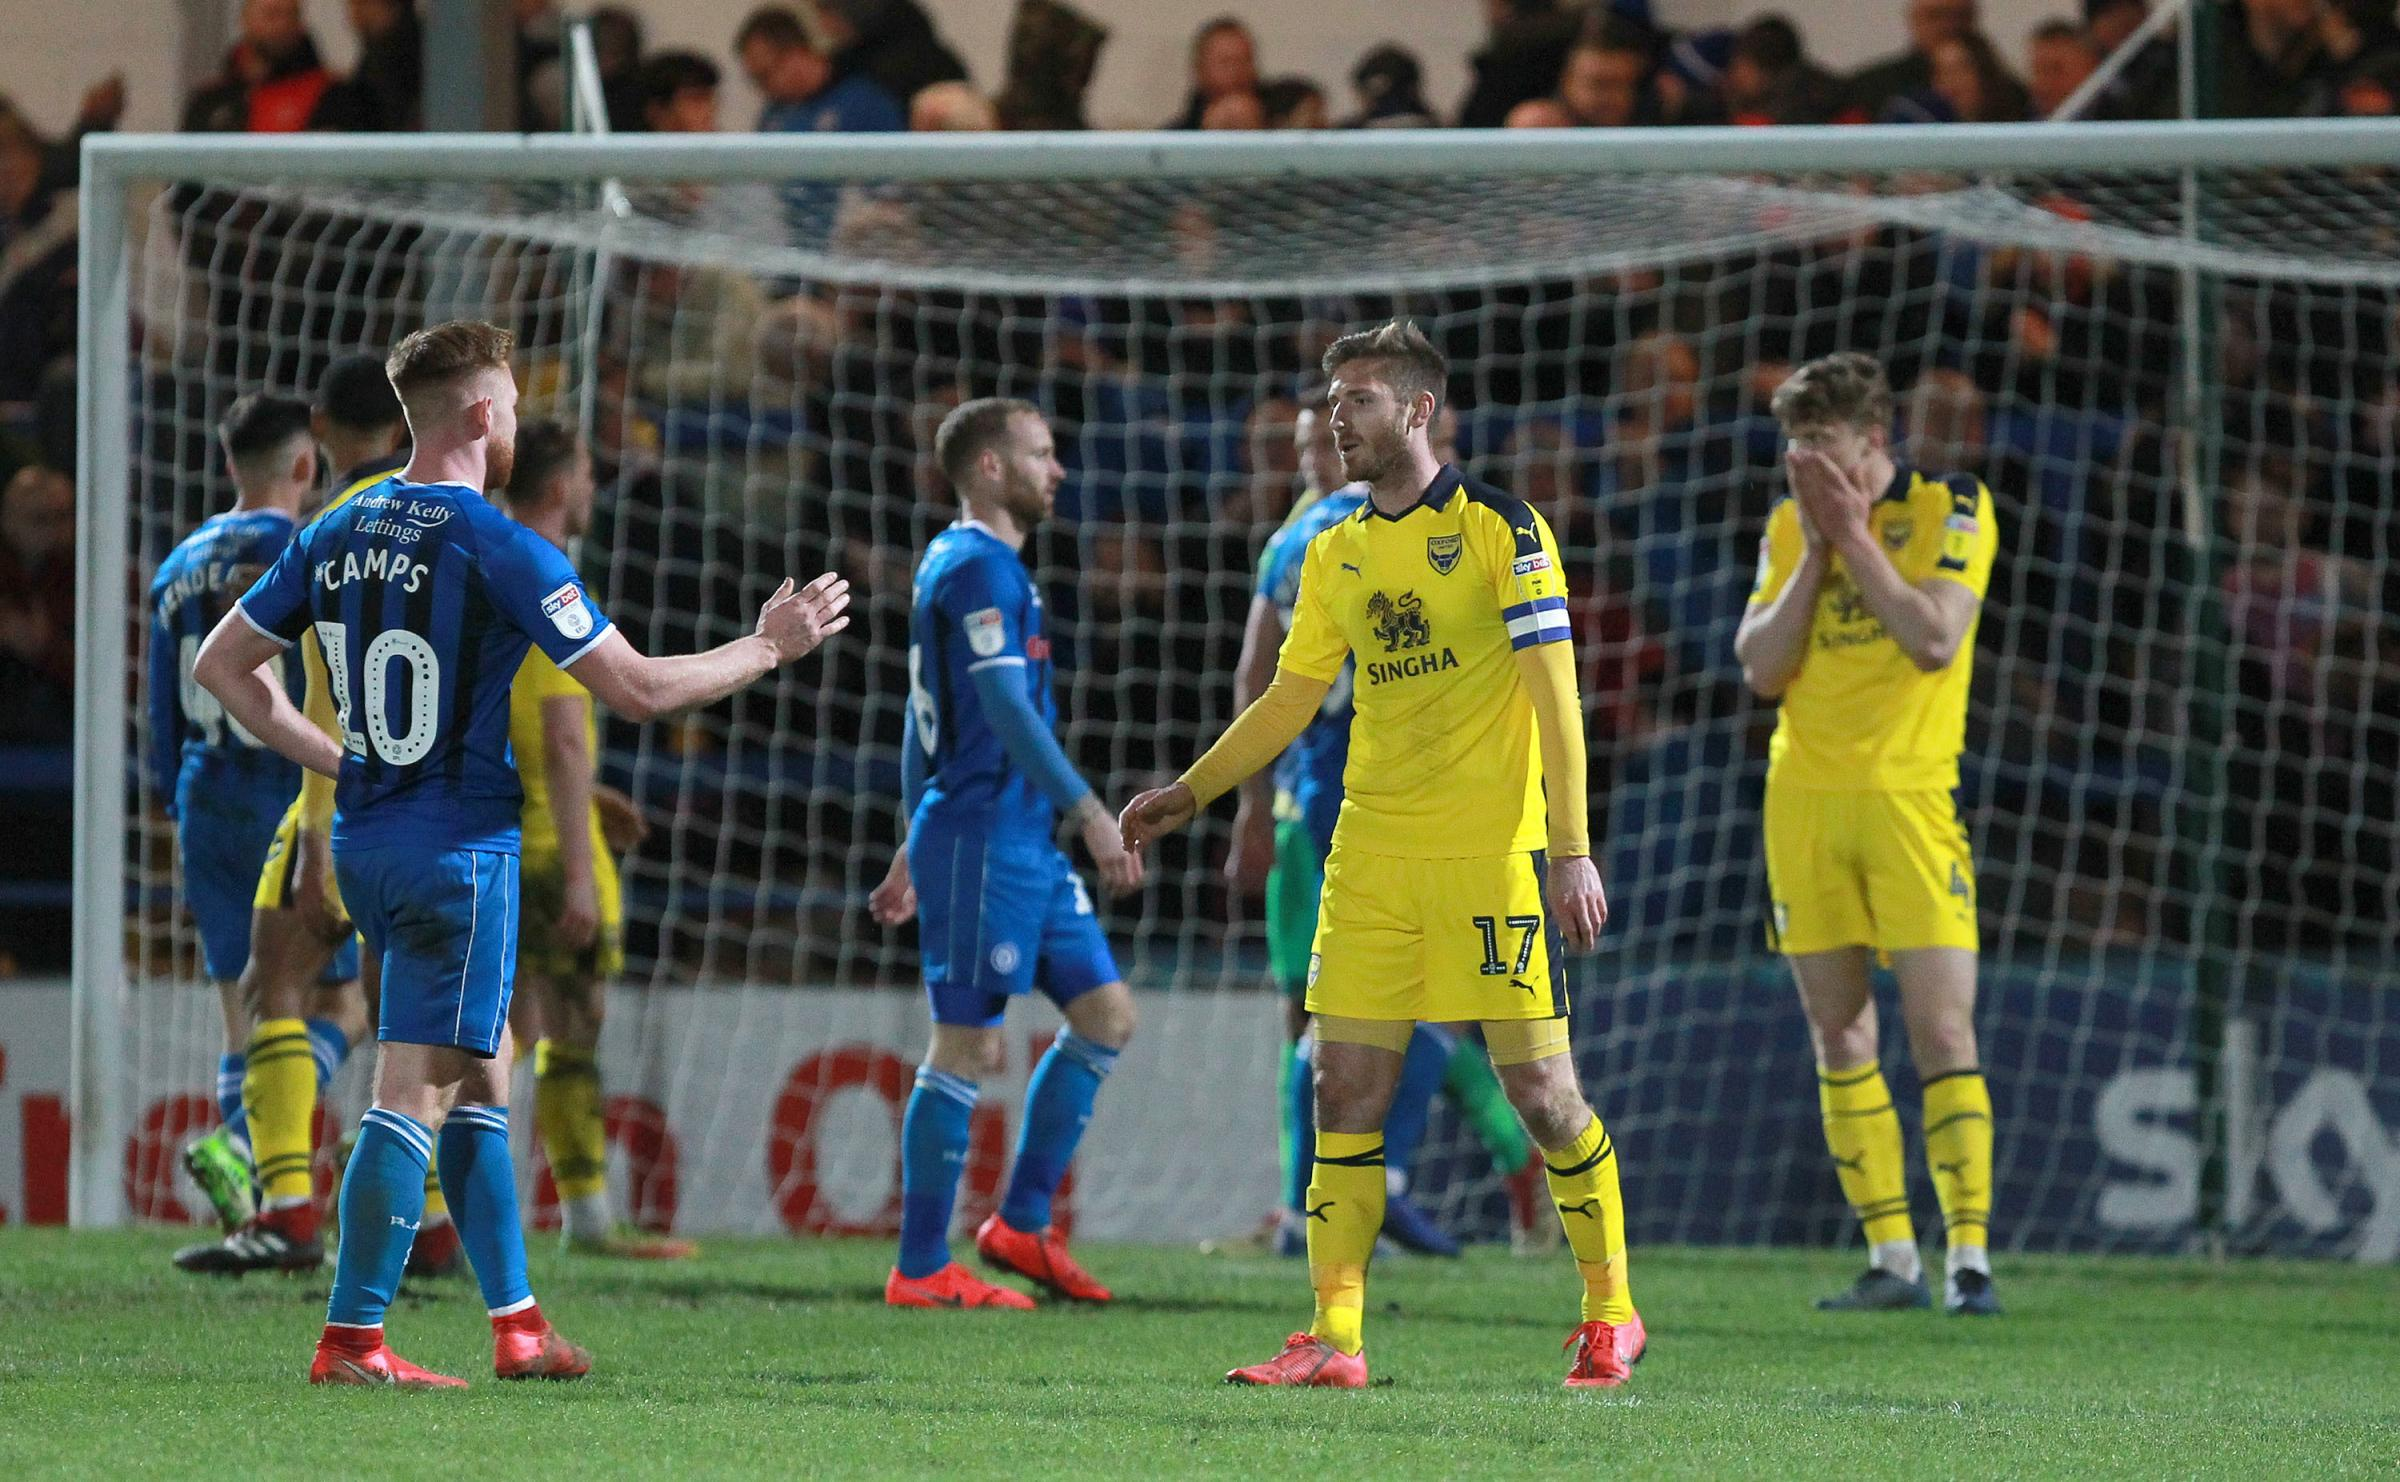 Oxford United's players show their disappointment at the final whistle after the stalemate with Rochdale       Picture: Richard Parkes